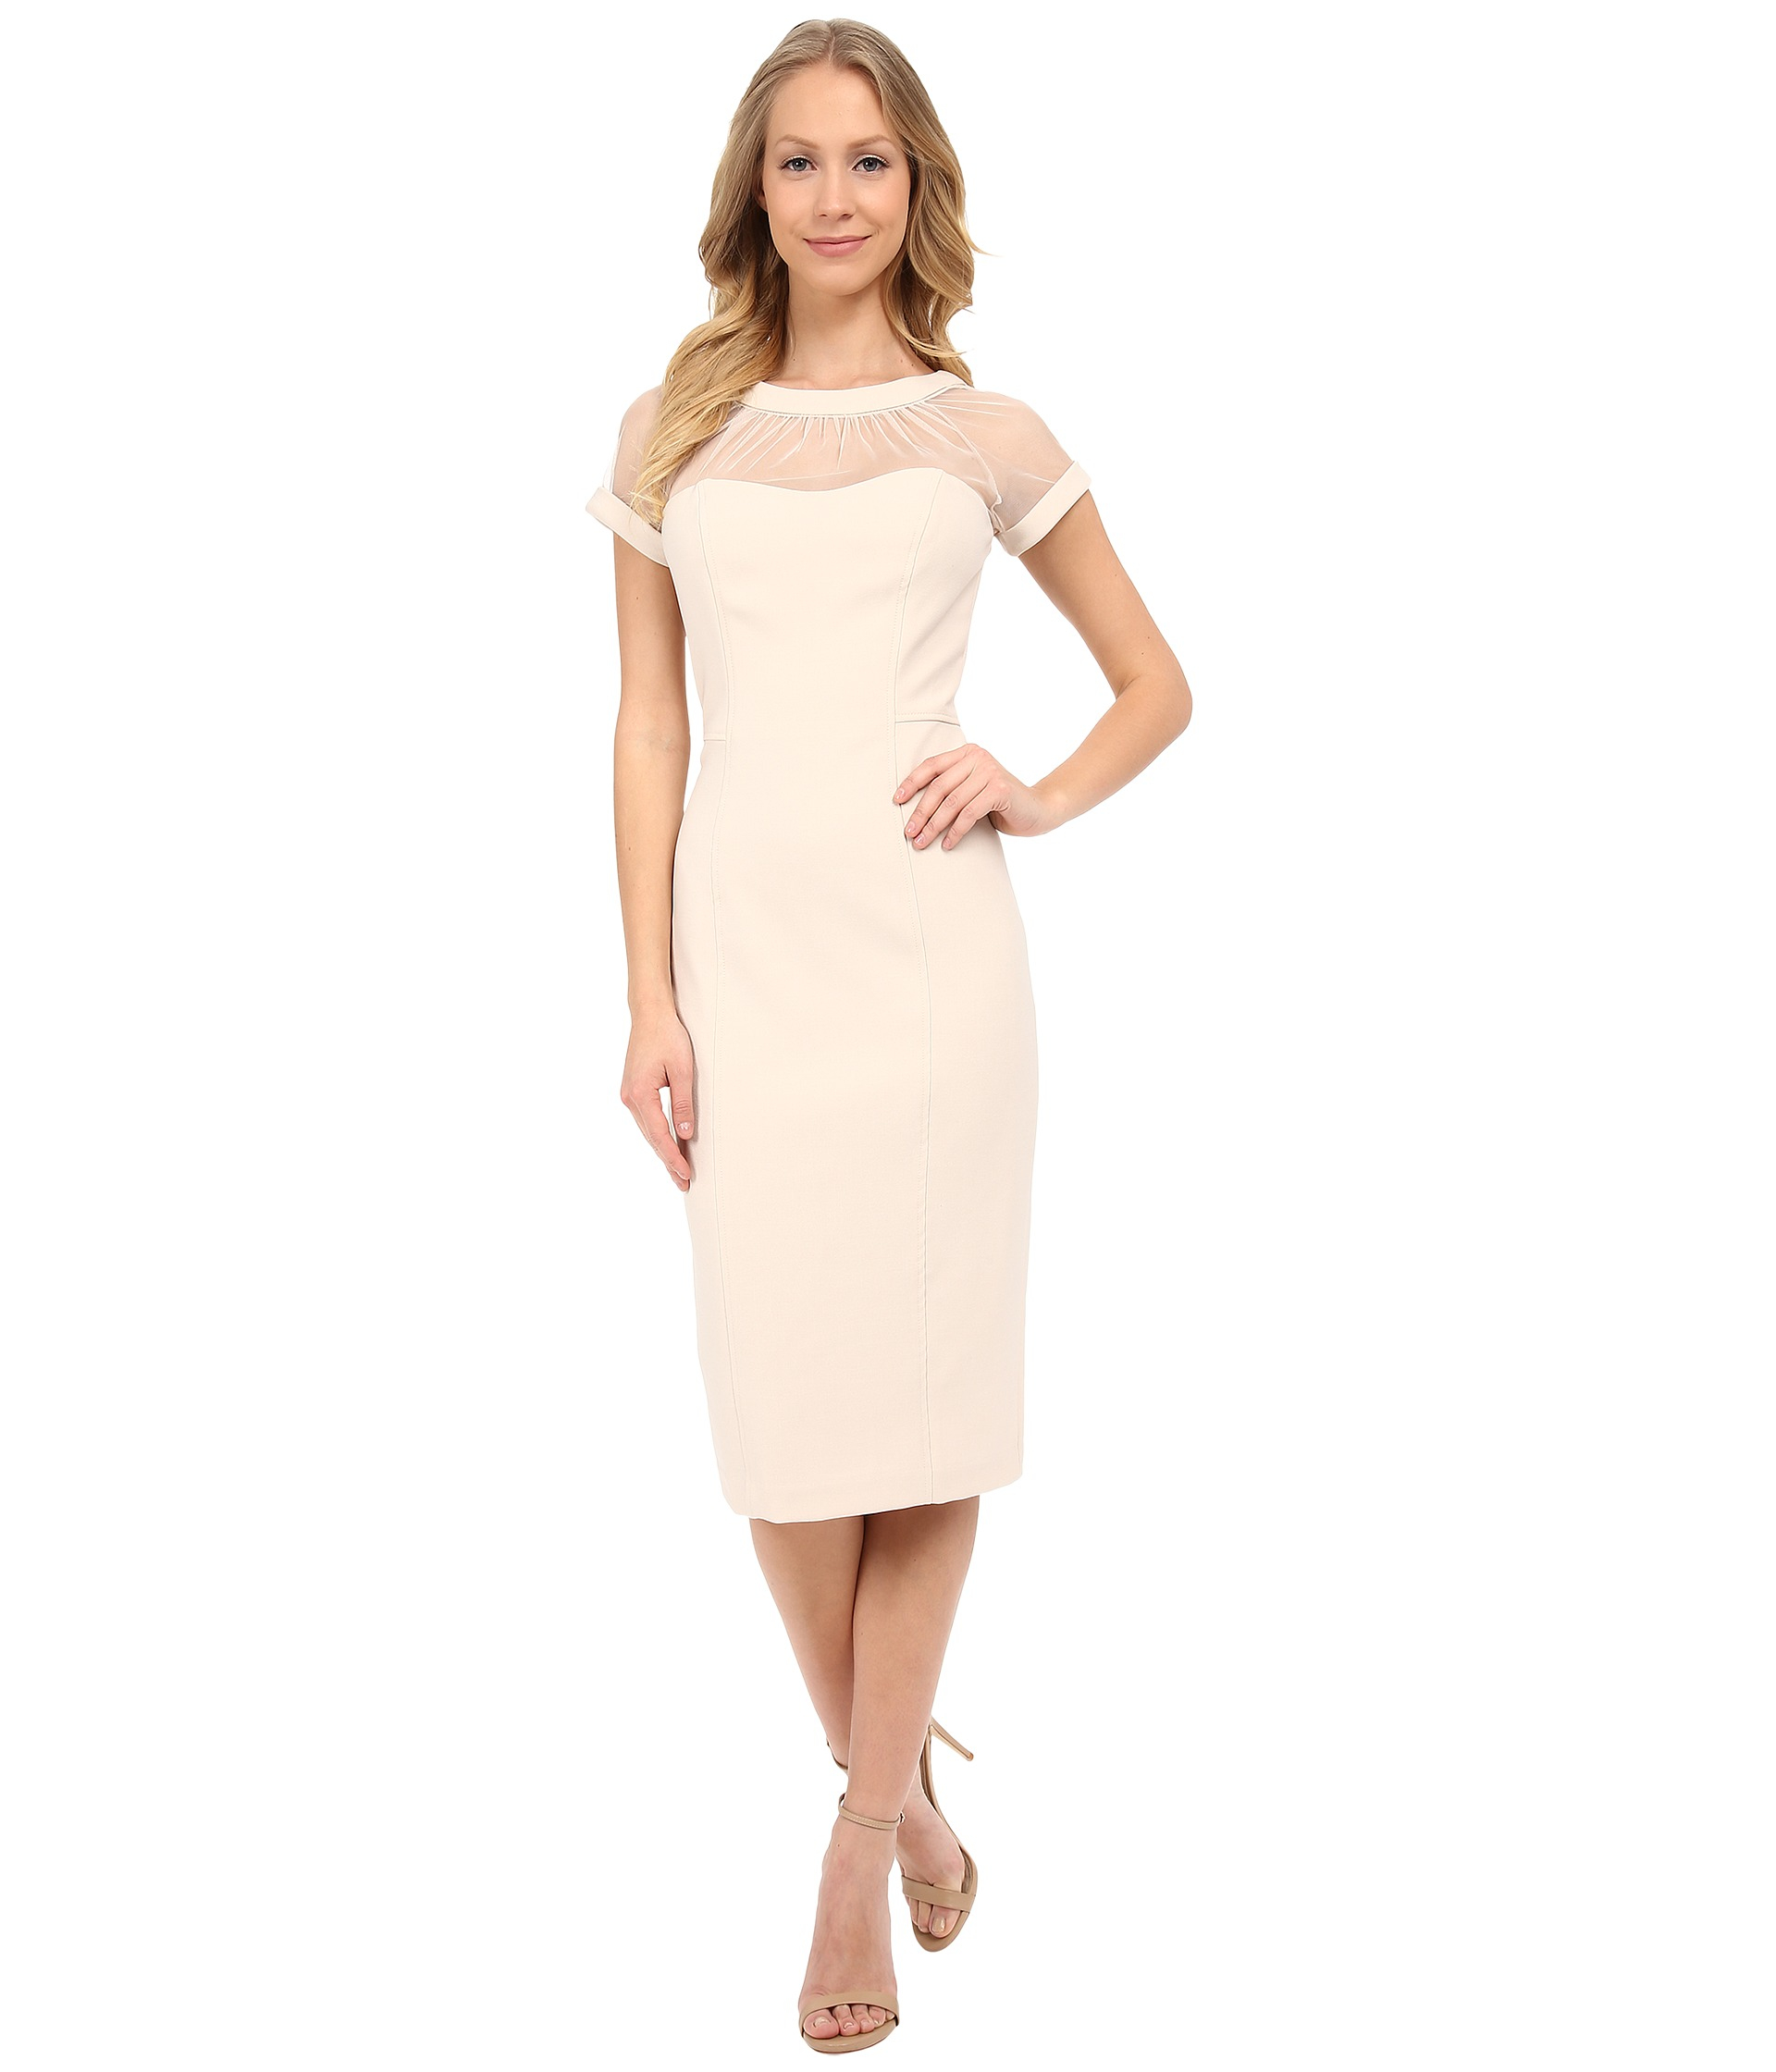 ea30e261 Maggy London Illusion Top Crepe Dress in Natural - Lyst